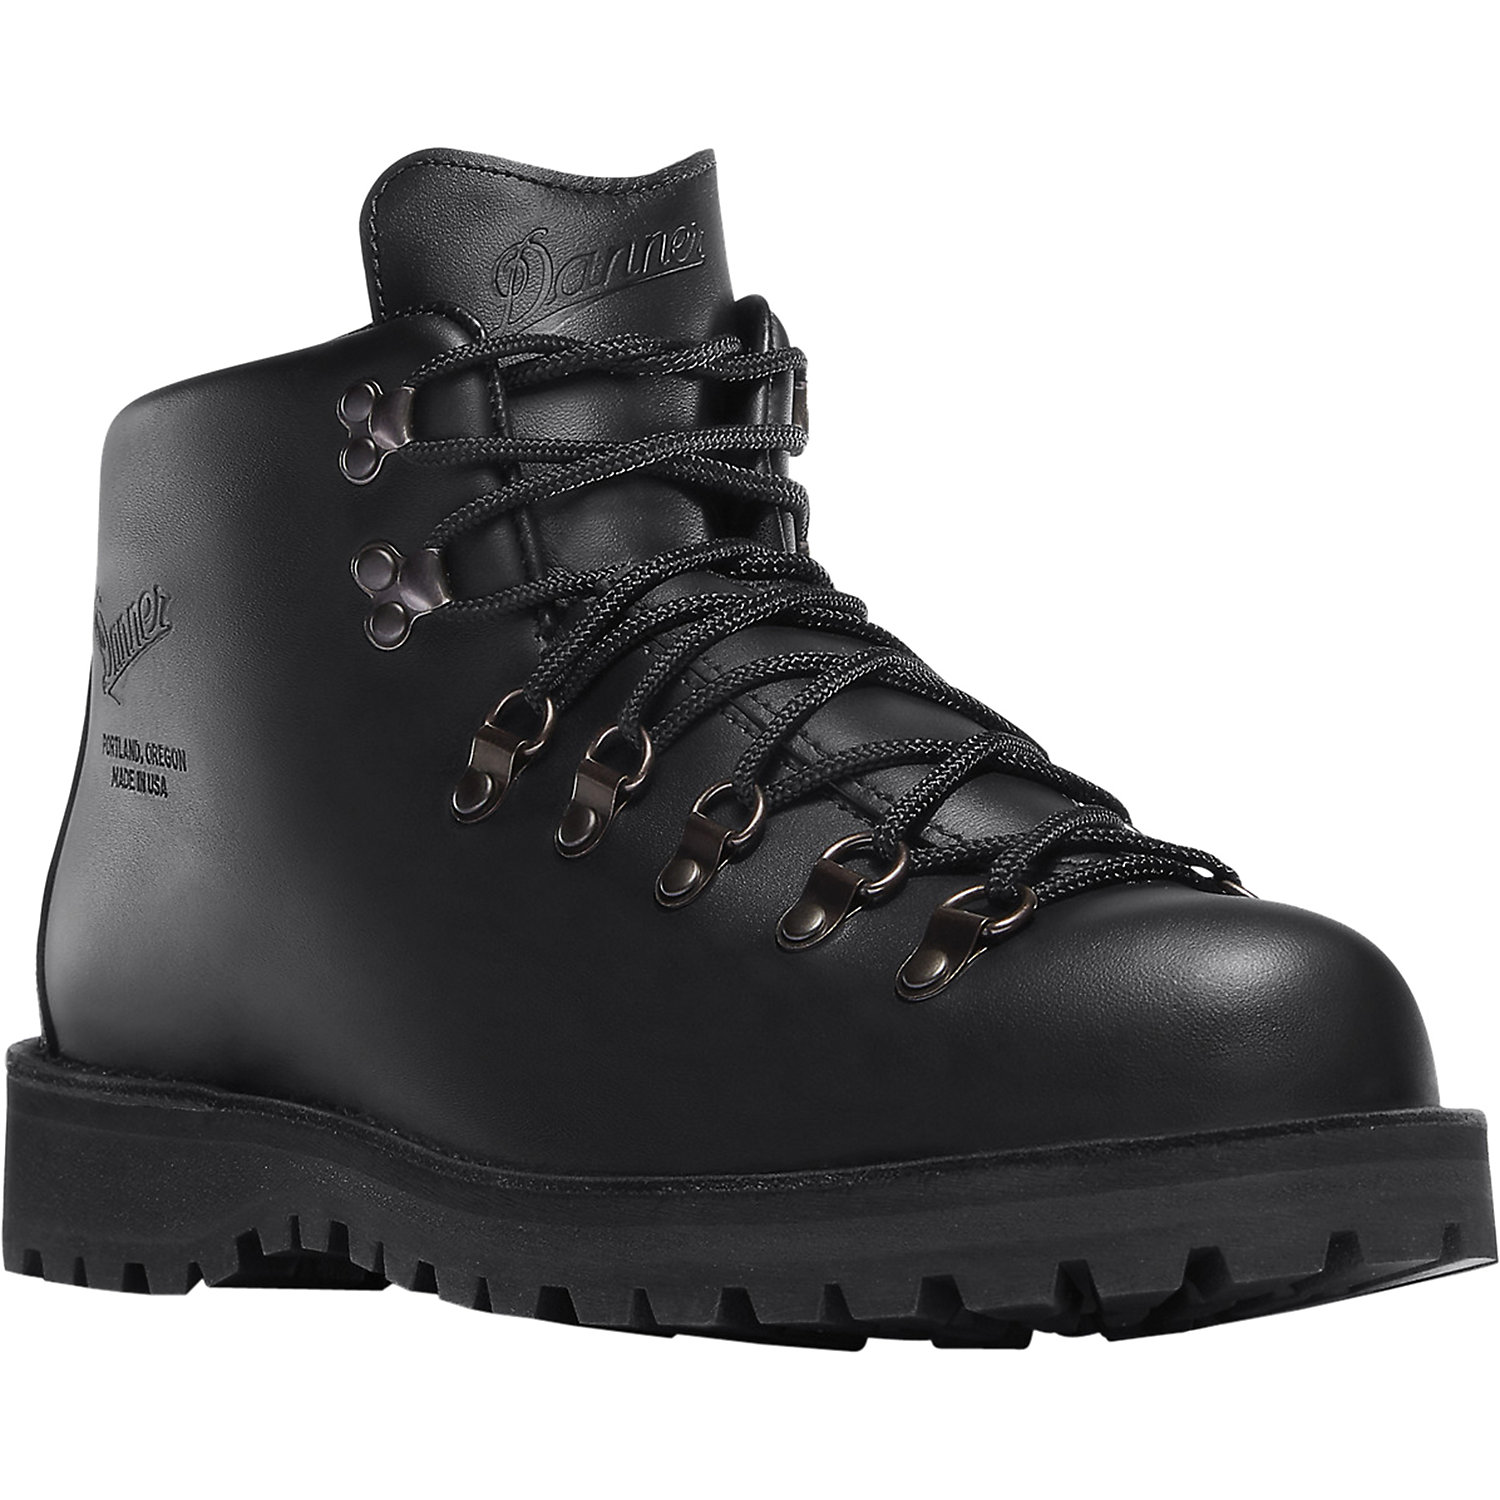 aee3180baf7 Danner Portland Select Collection Men's Mountain Light Boot